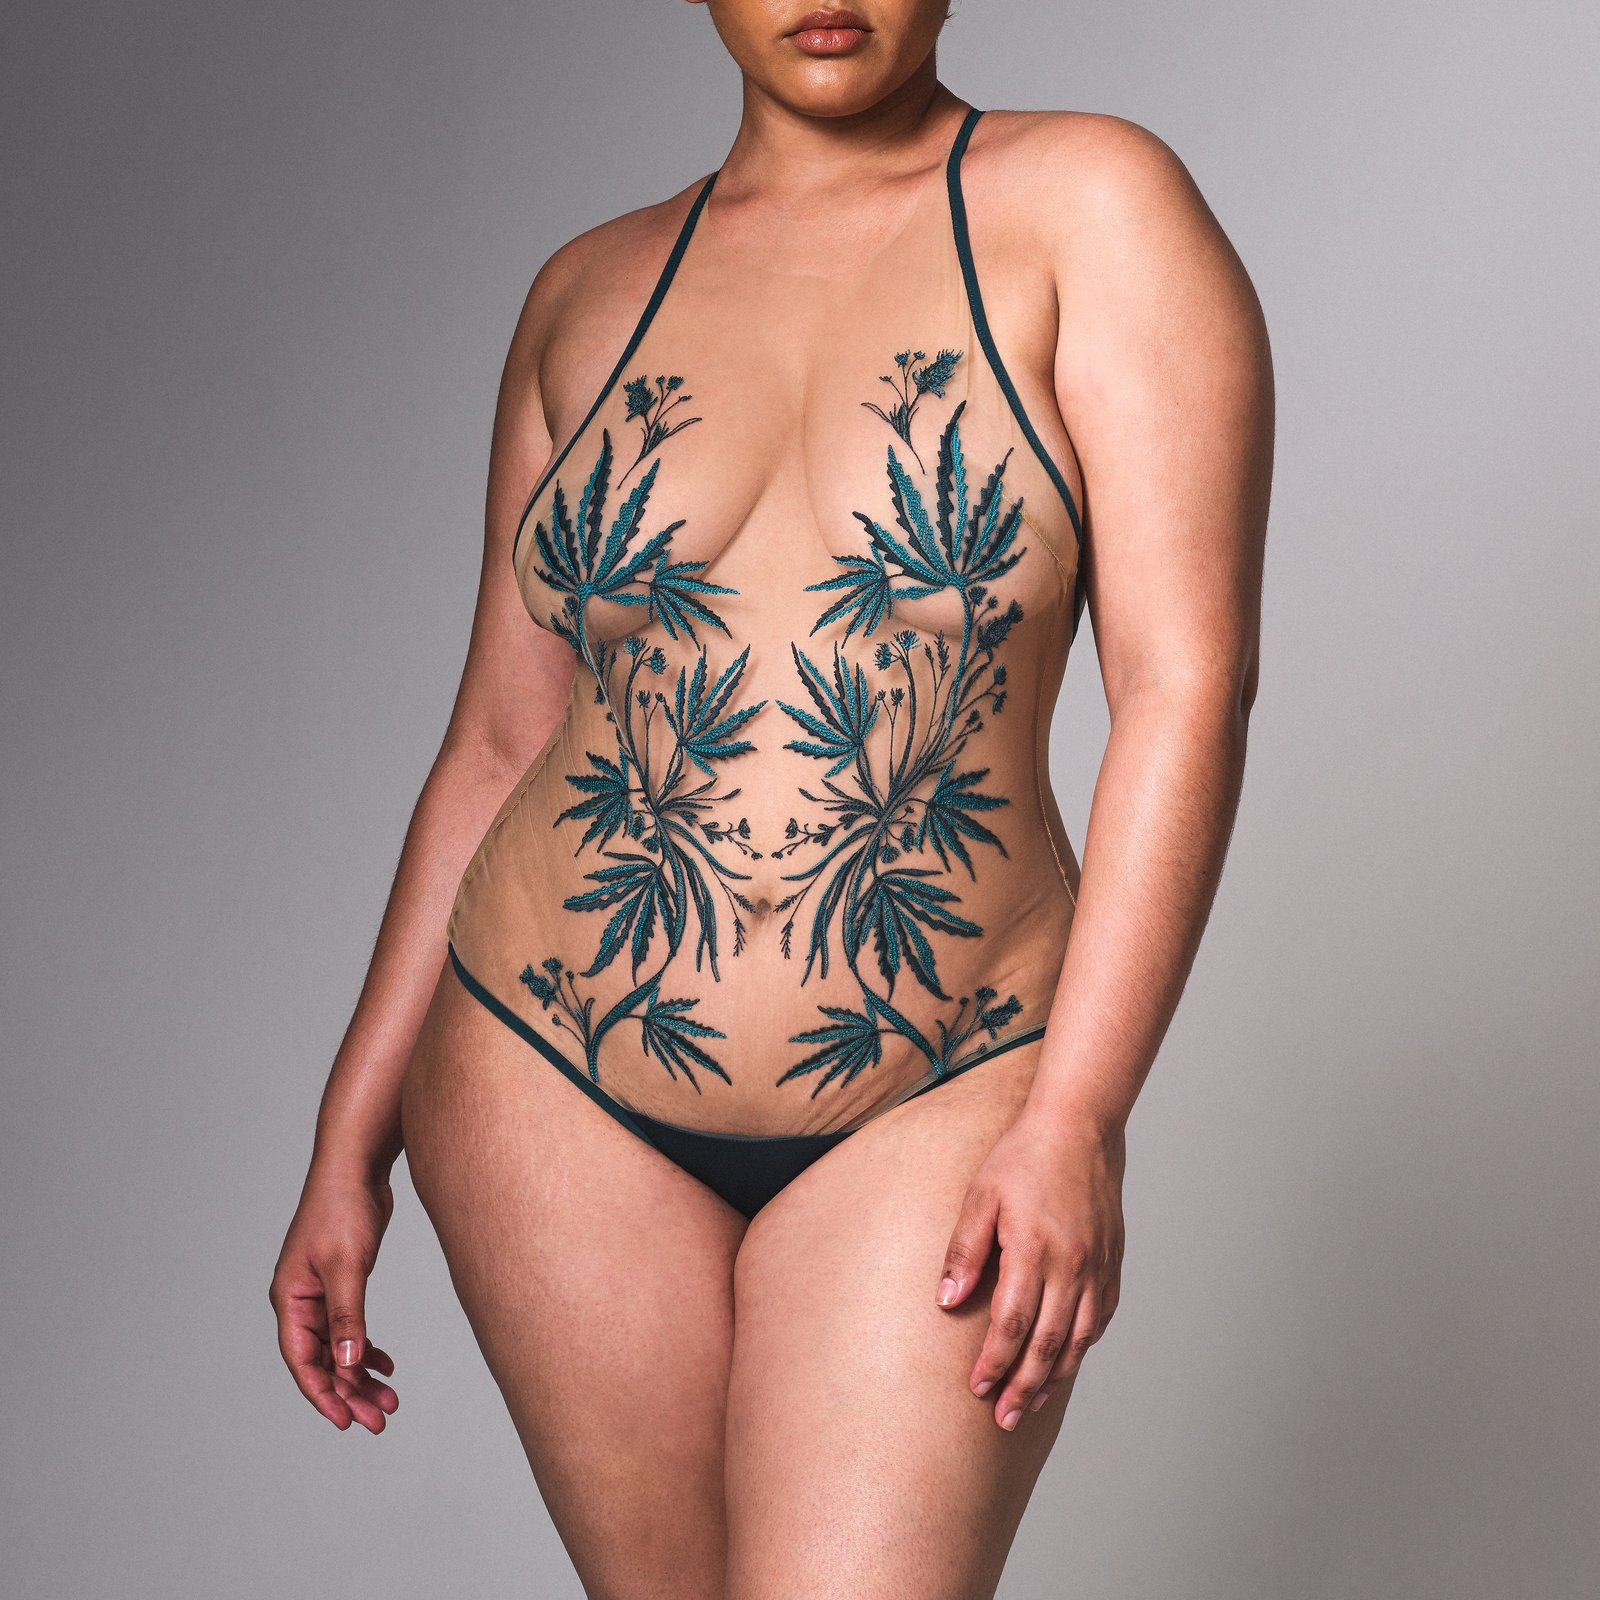 """Thistle & Spire's """"Brooklyn Haze"""" bodysuit features a fashionable take on cannabis with lush teal embroidery"""